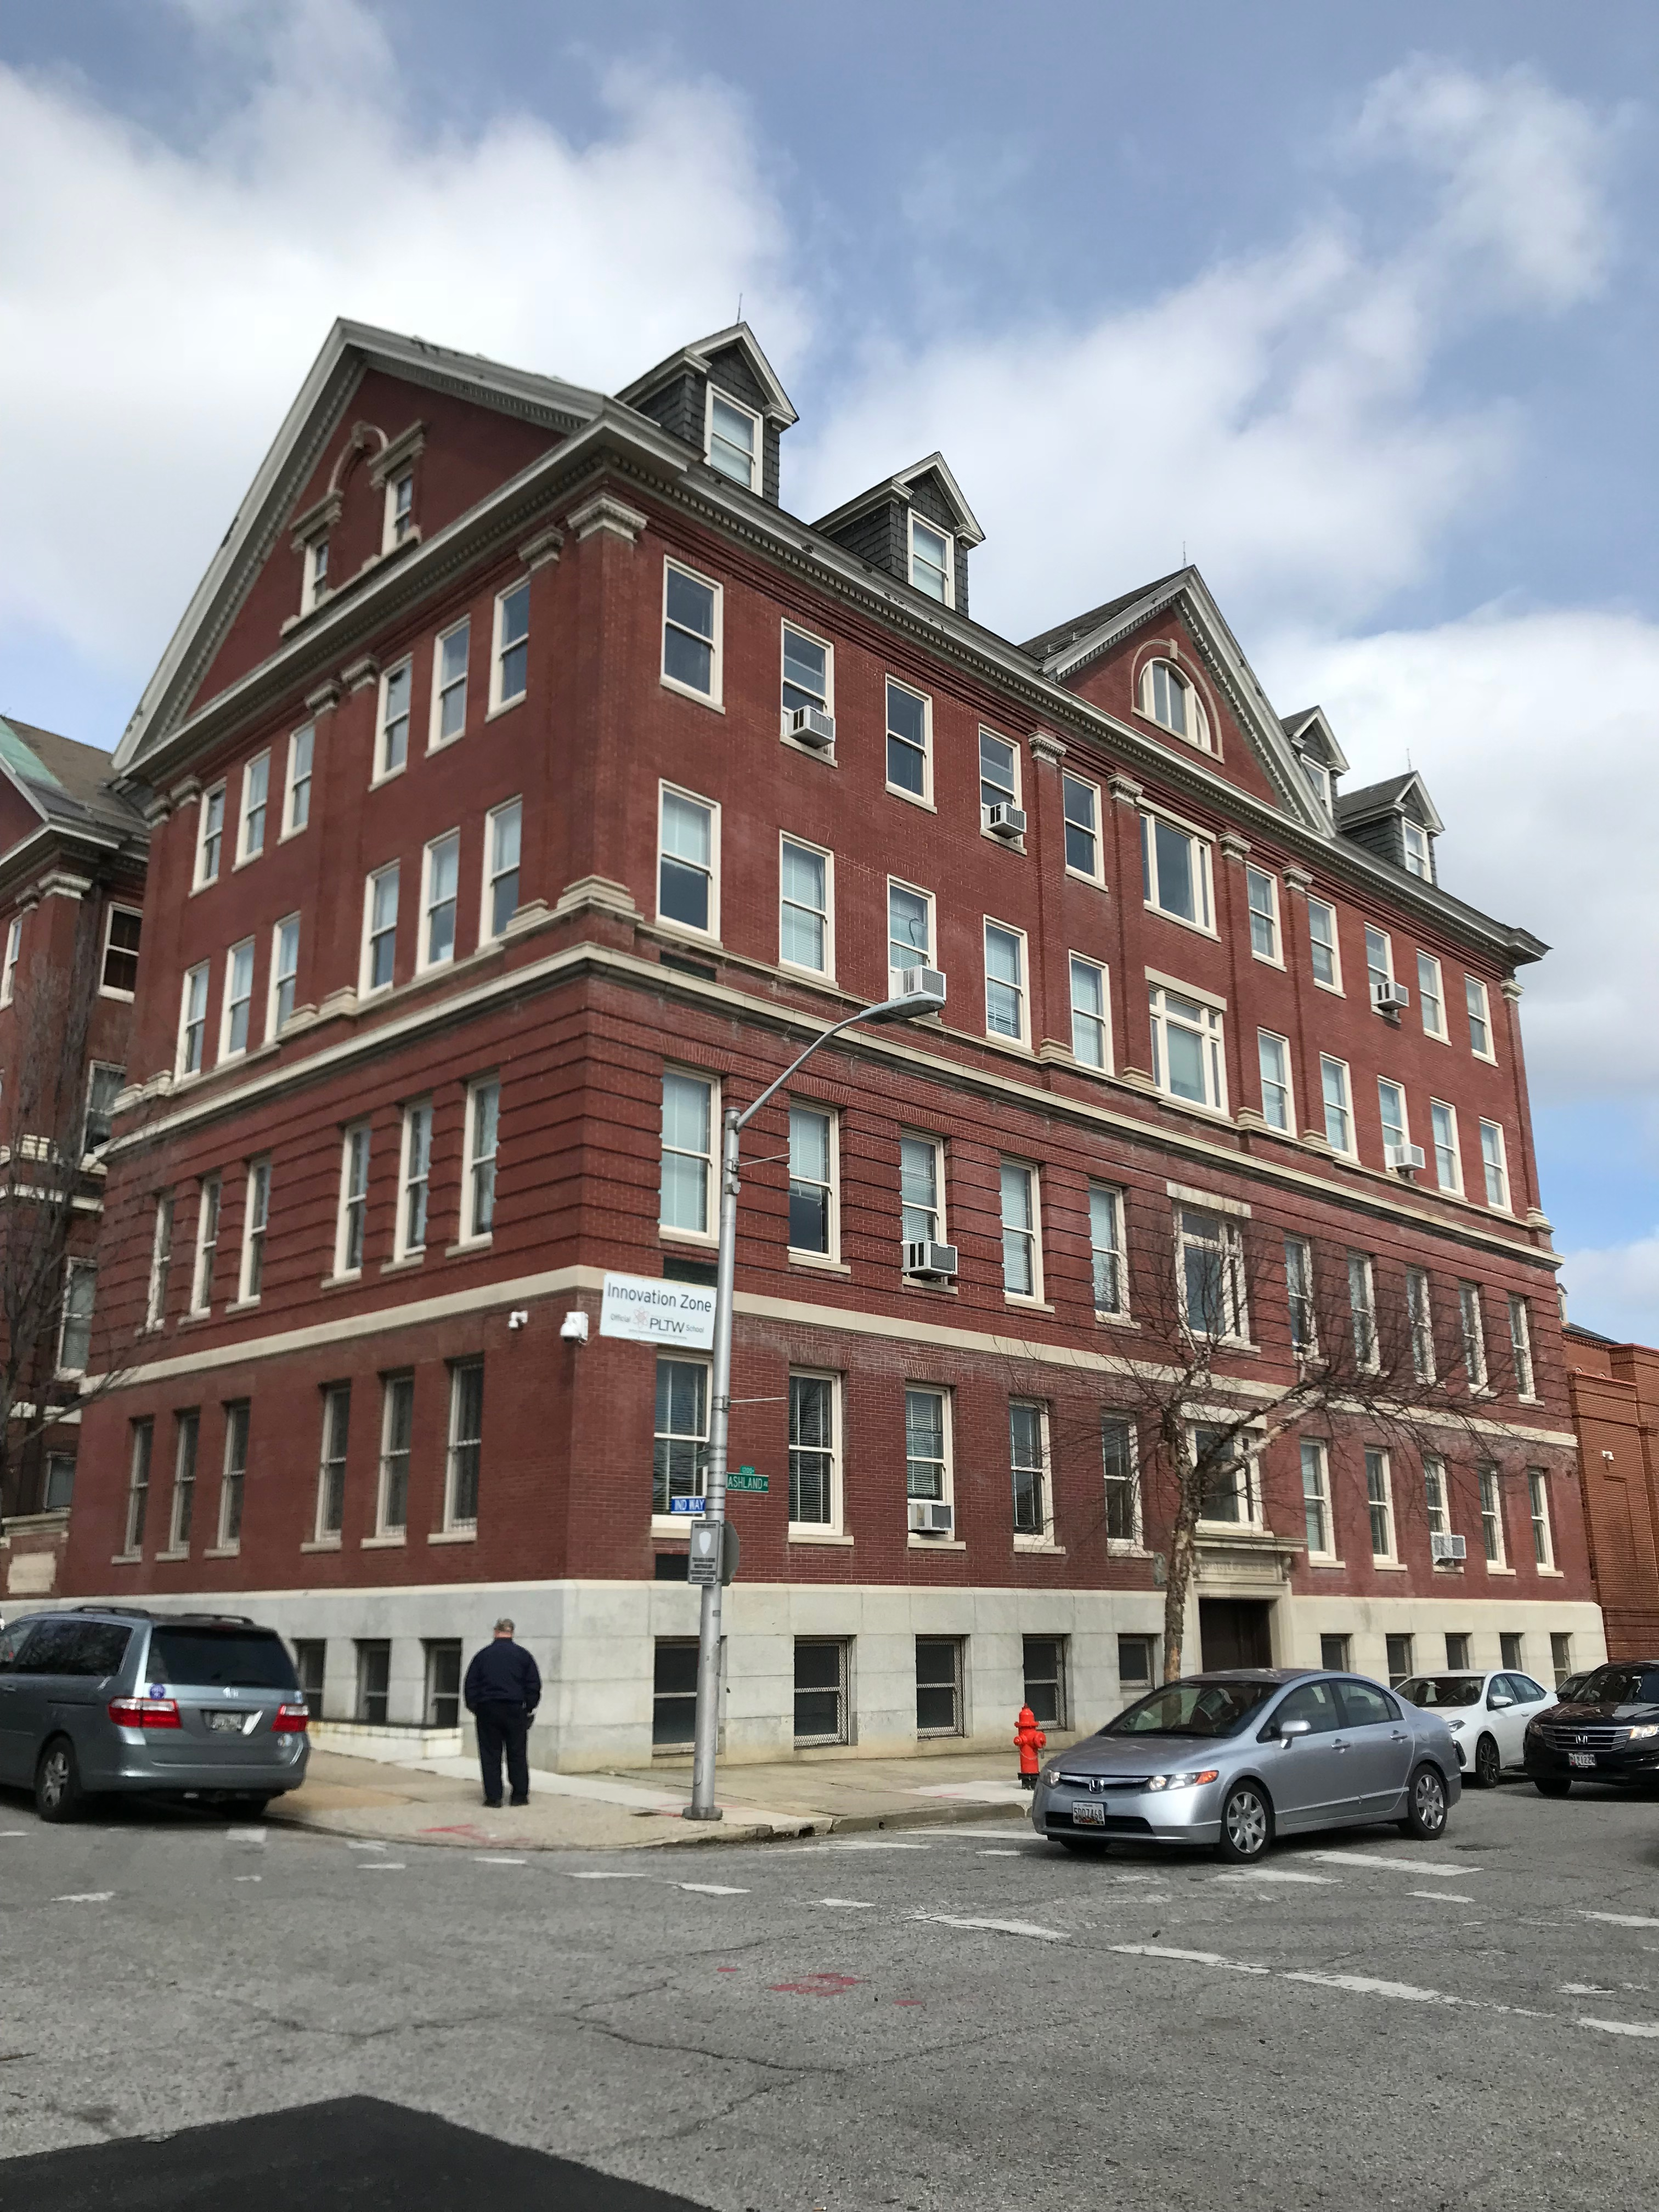 Institute of notre dame (1852-1926), 901 aisquith street, baltimore, md 21202 photo